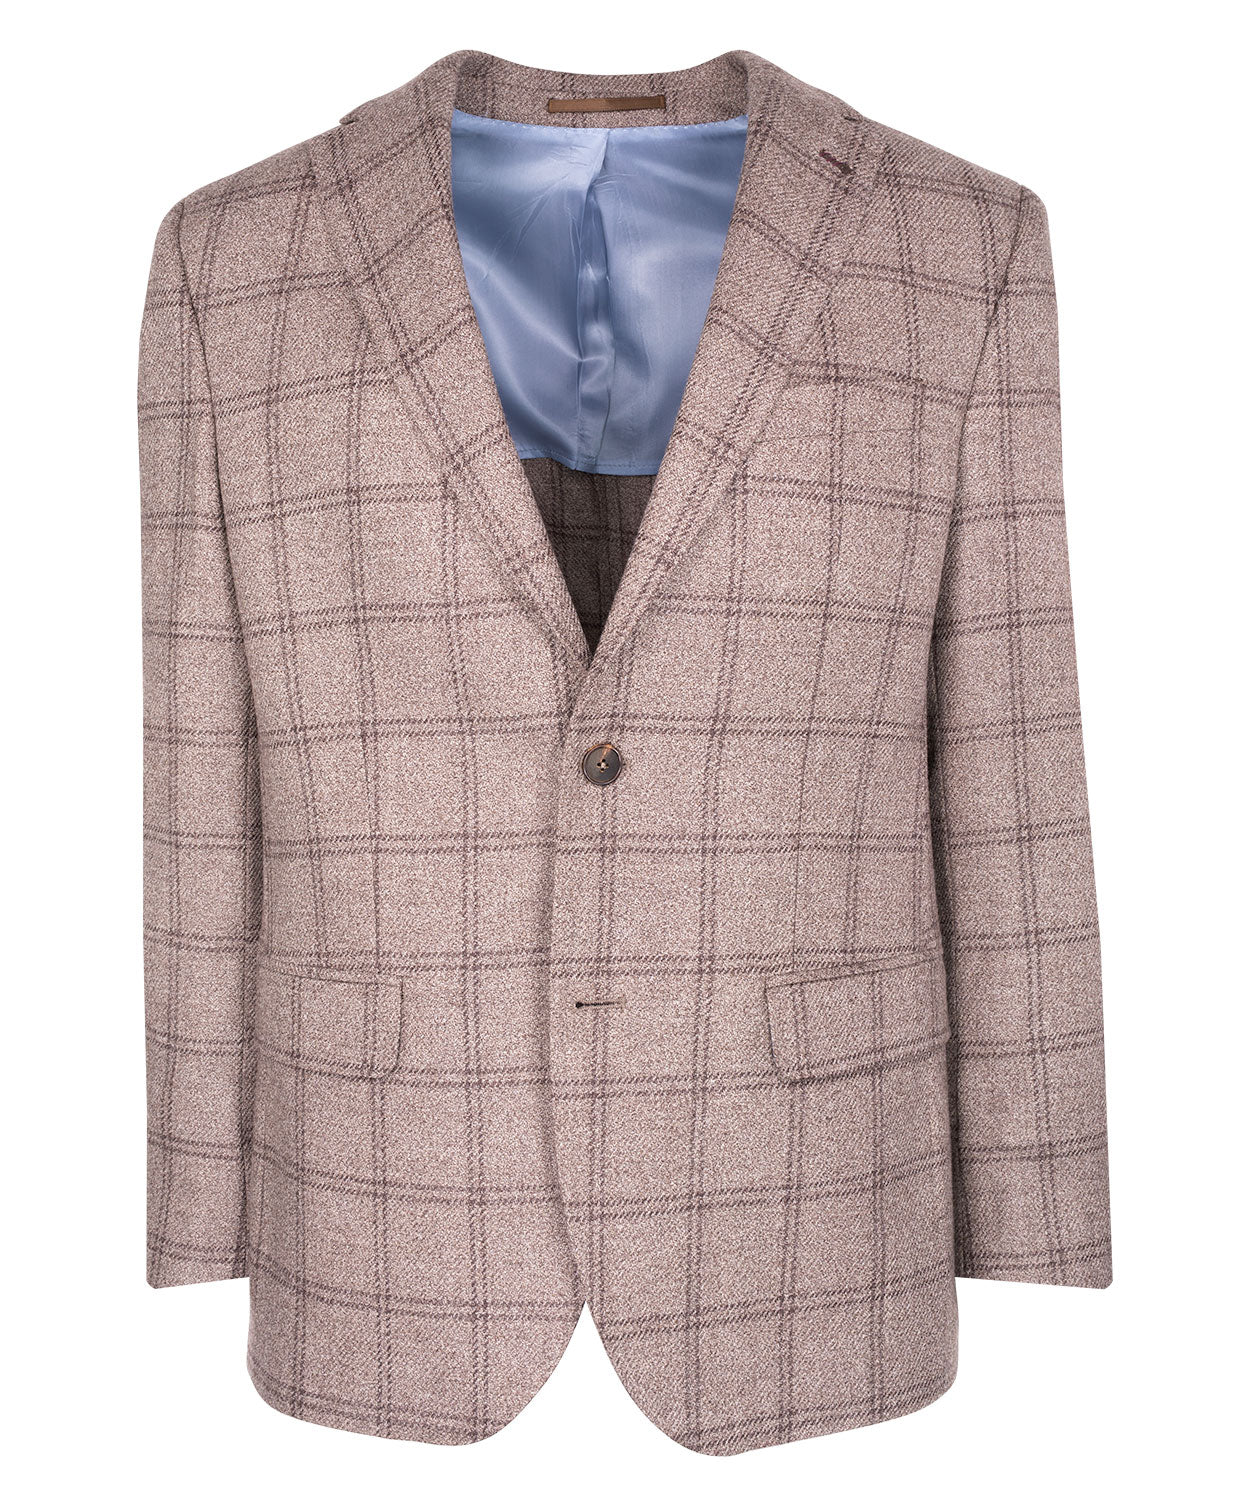 Camel/Café Double Window Pane Jacket